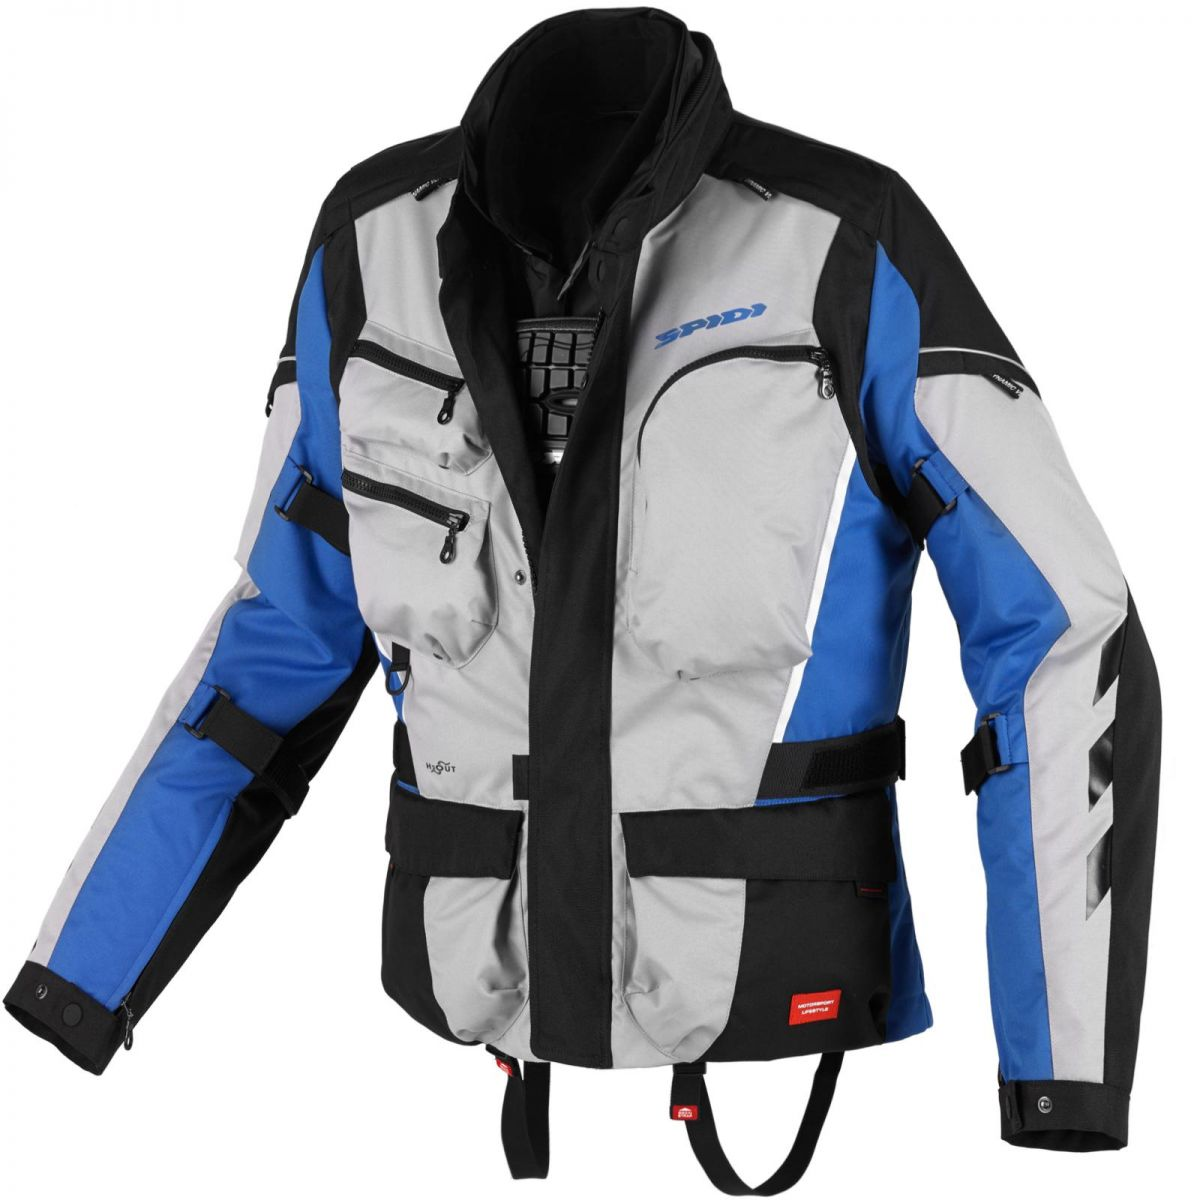 Jaqueta Spidi Voyager 3 H2Out Dark/ Grey/Blue ( Big Trail - Parka ) - SUPEROFERTA!